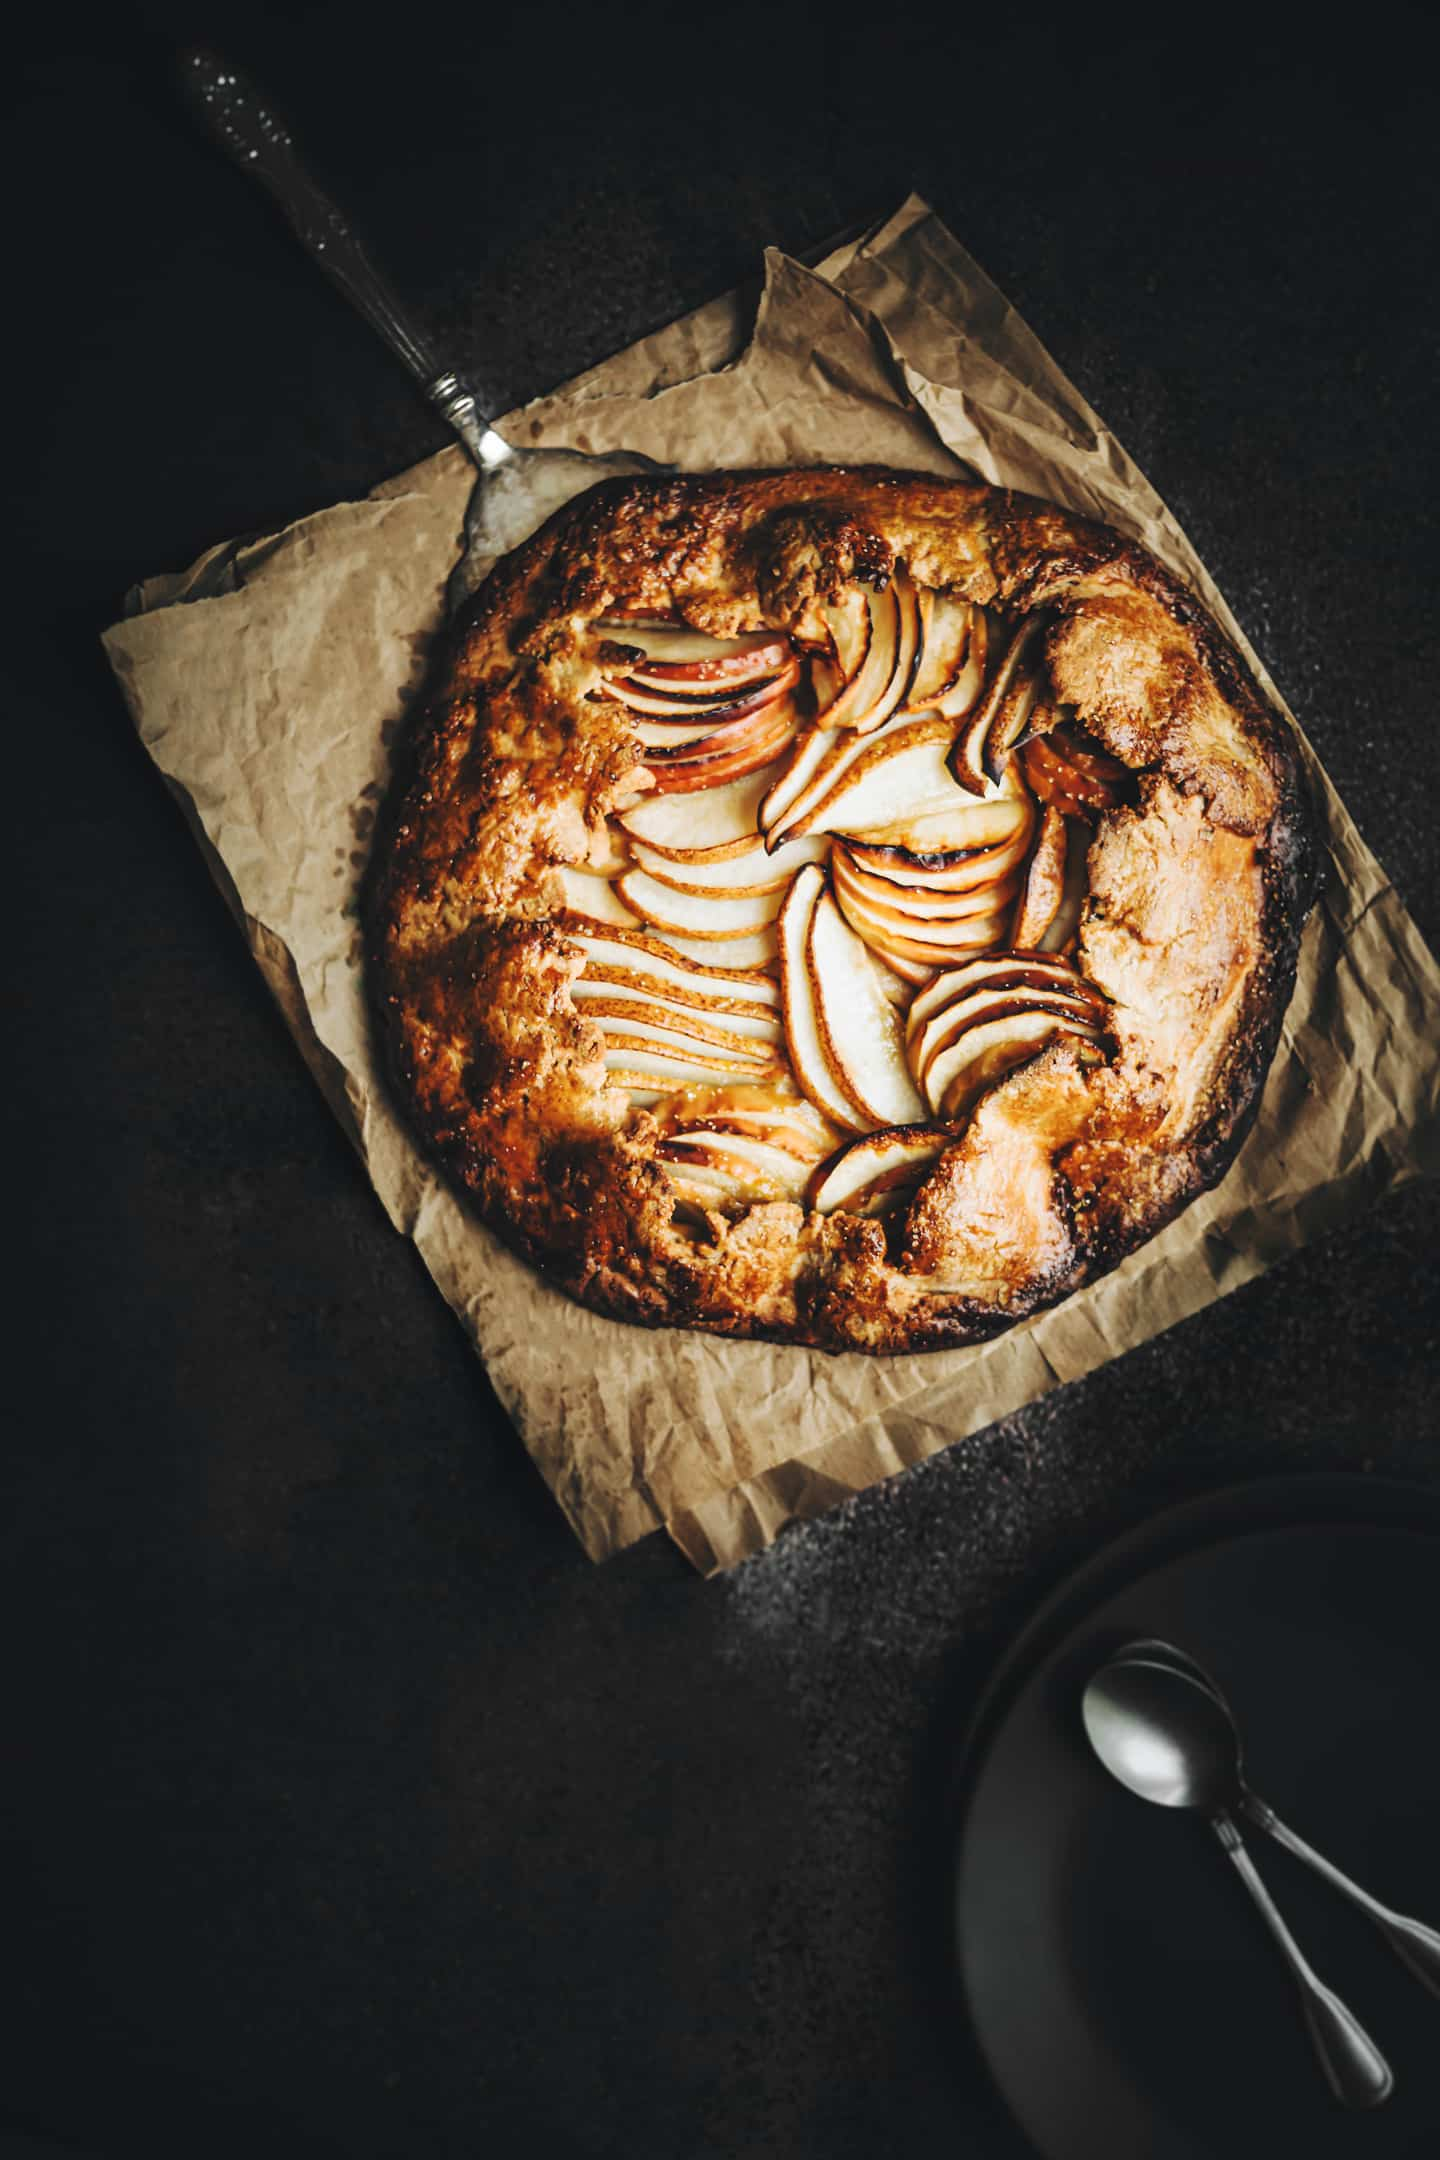 Apple and pear french tart